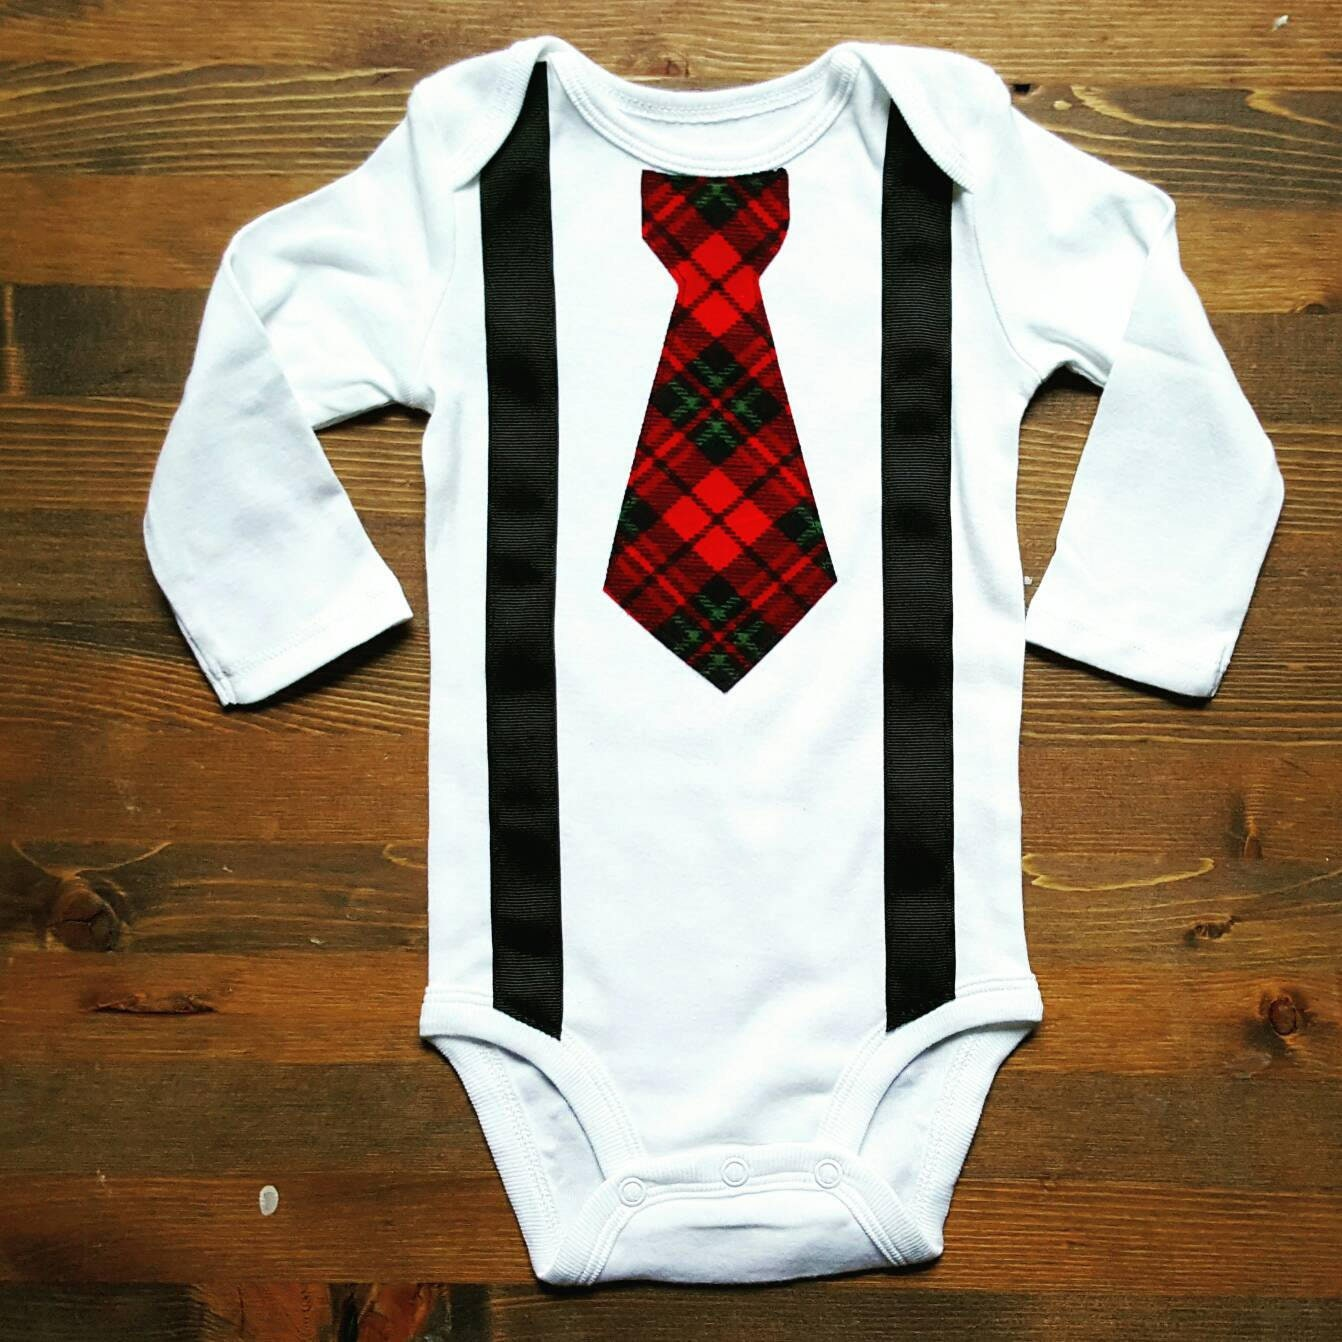 Baby Boy Clothes Baby Boy Christmas Outfit Baby Tie   Etsy